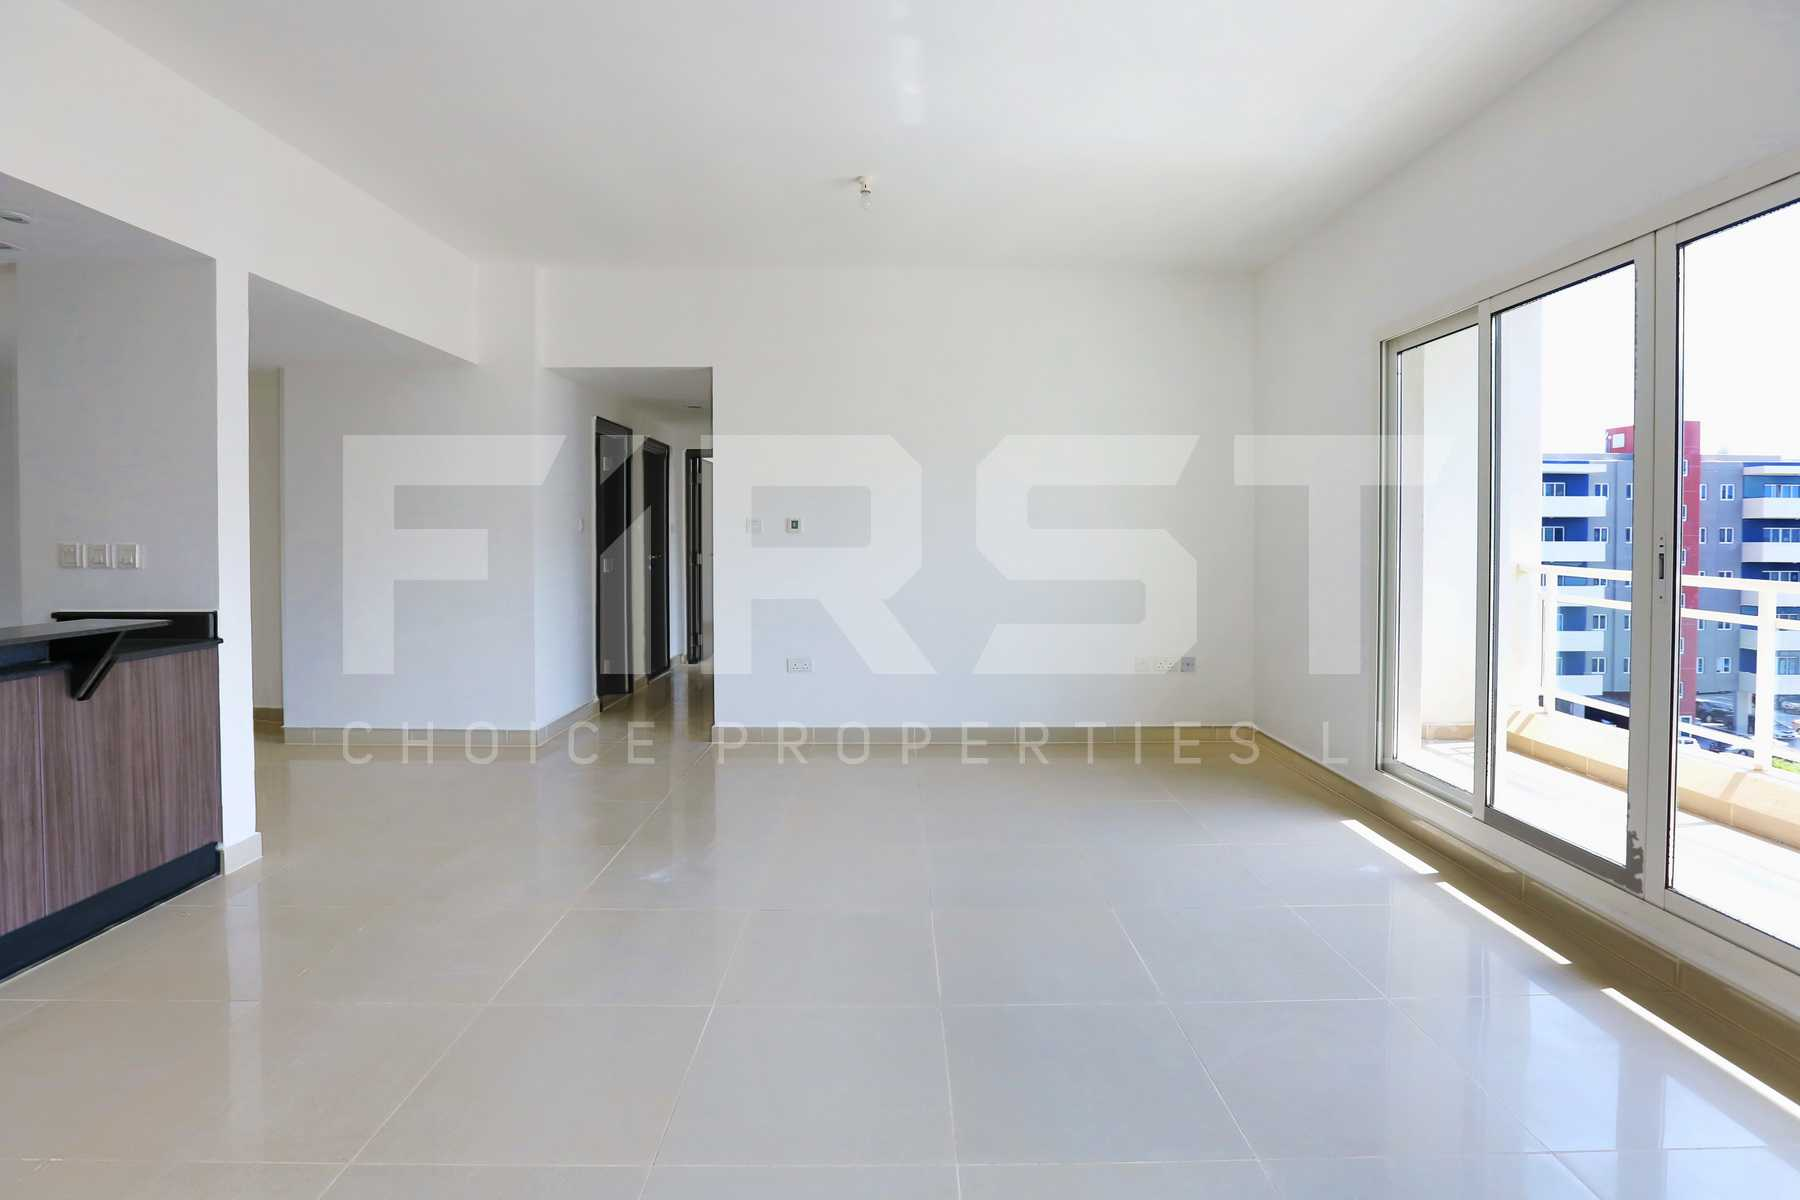 Internal Photo of 2 Bedroom Apartment Type B in Al Reef Downtown Al Reef Abu Dhabi UAE 114 sq.m 1227 (5).jpg